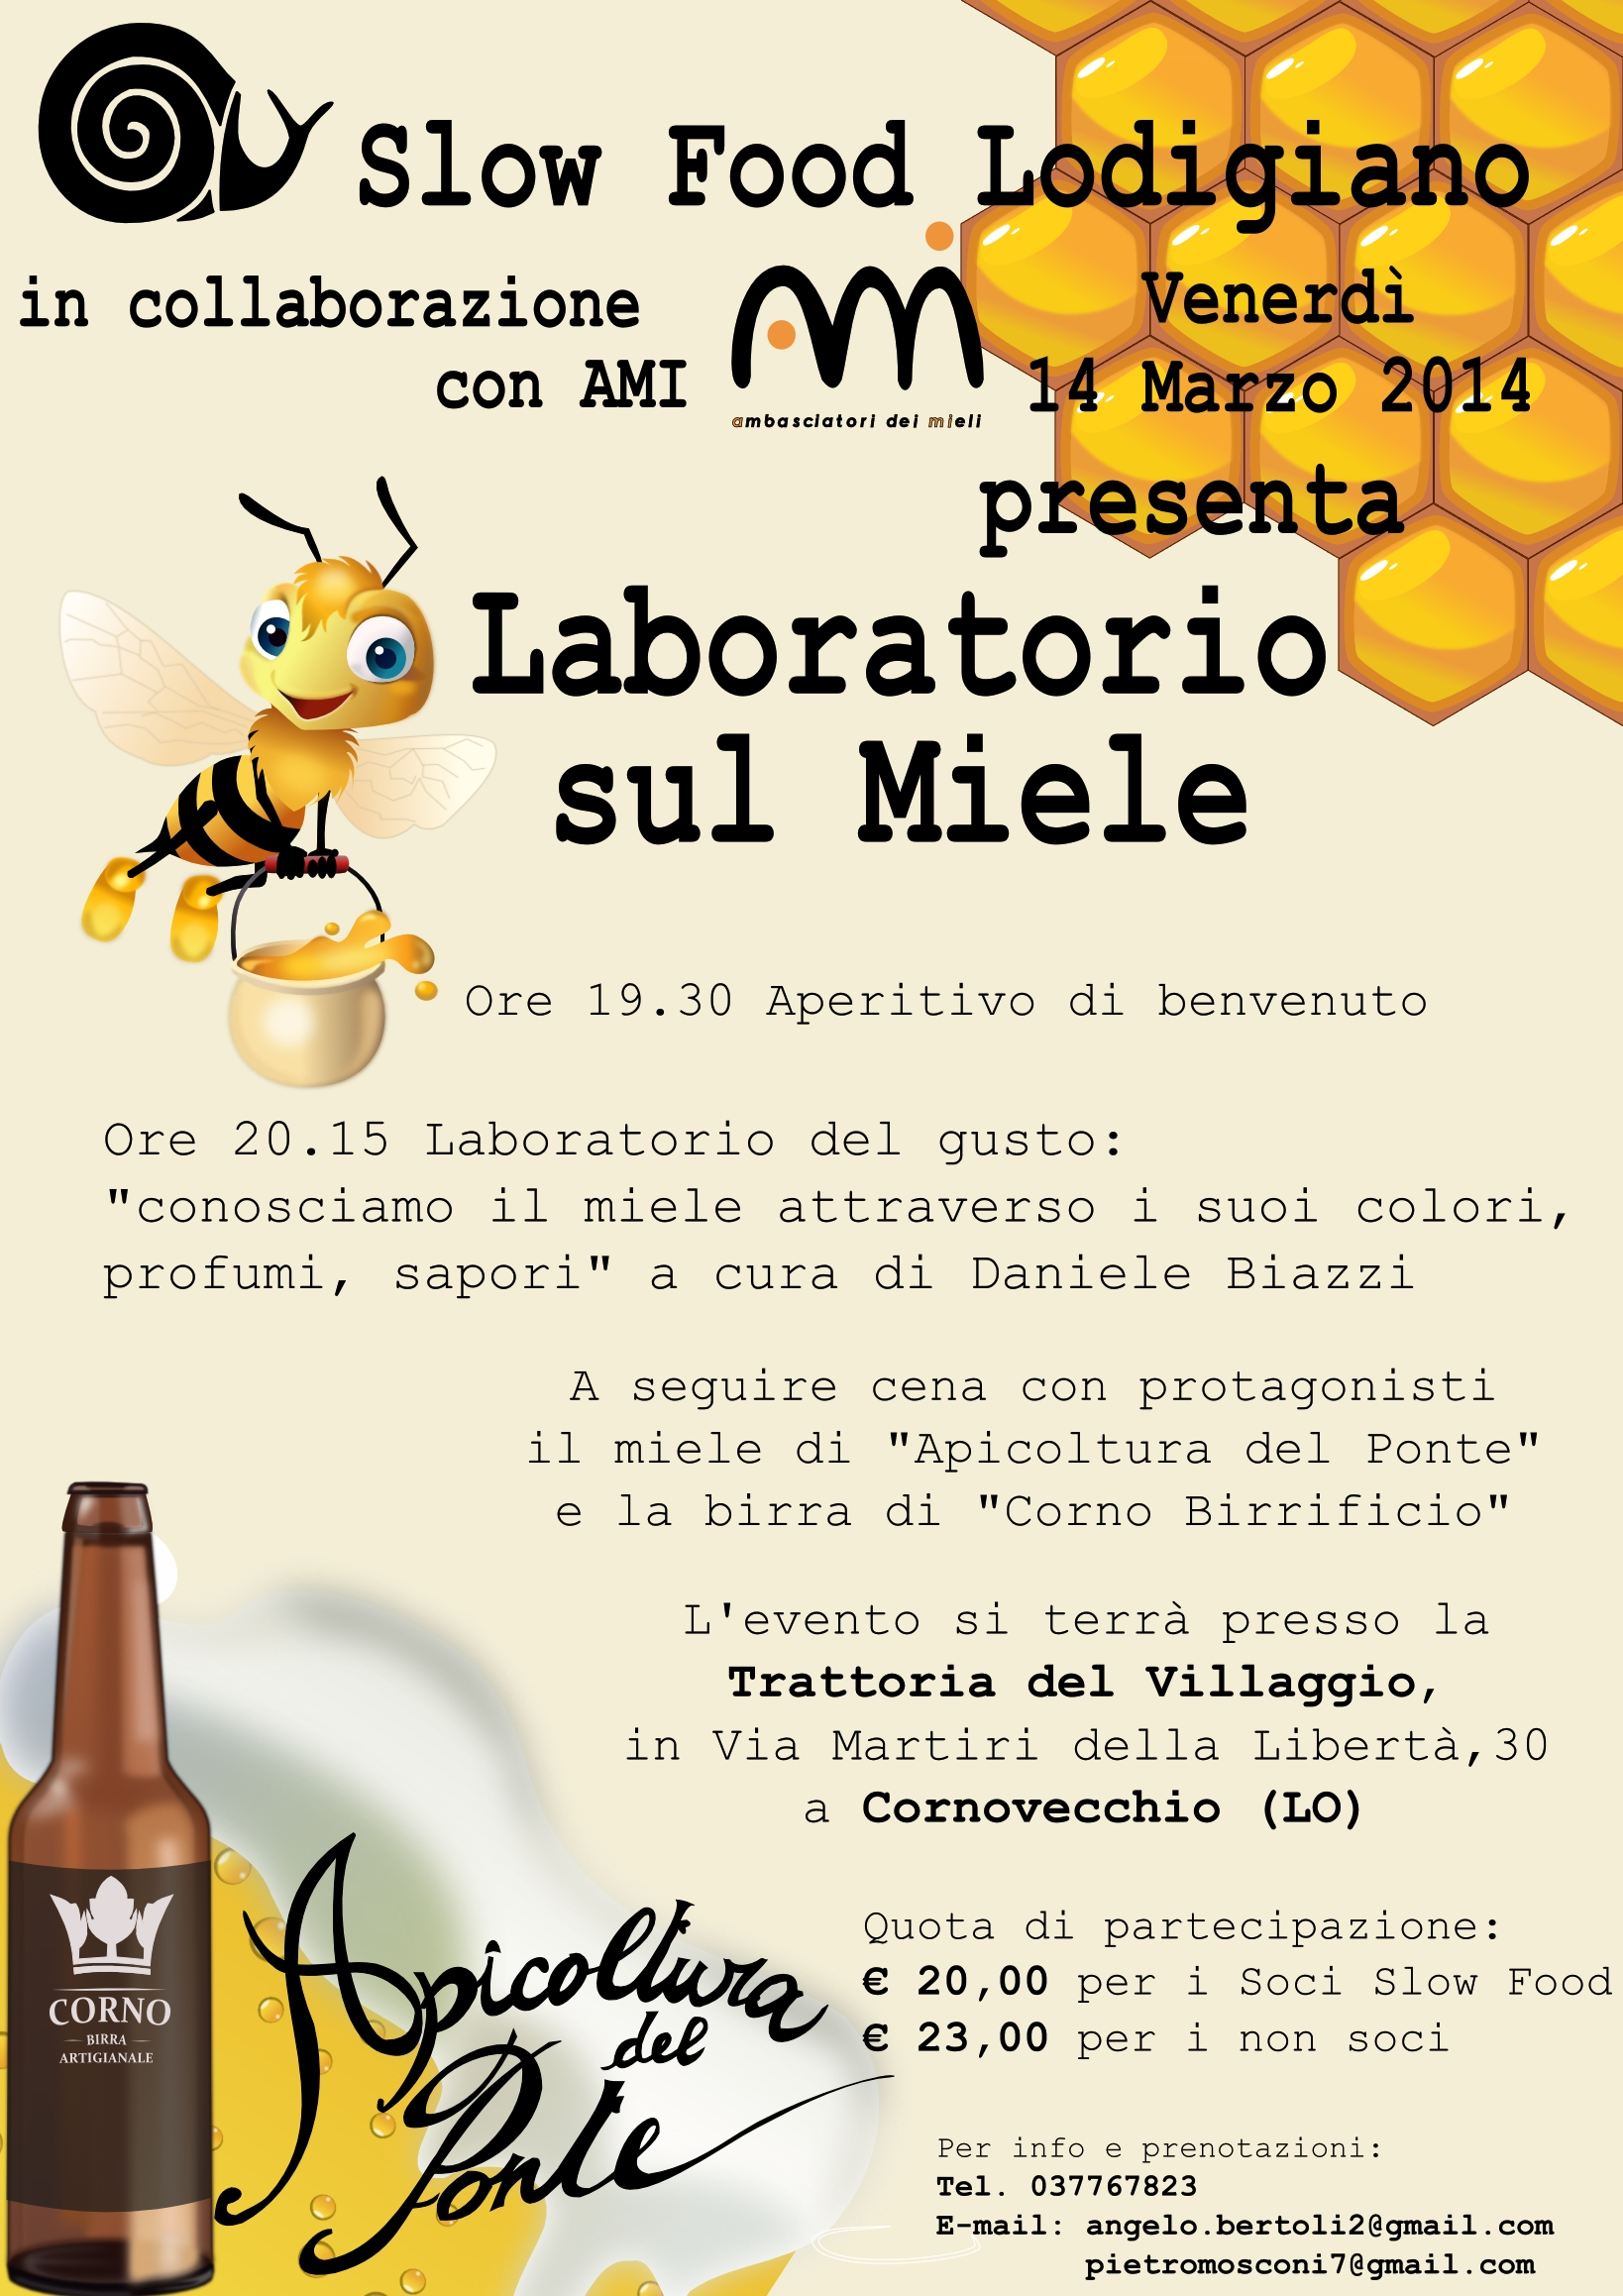 2014 14 marzo slow food lodigiano